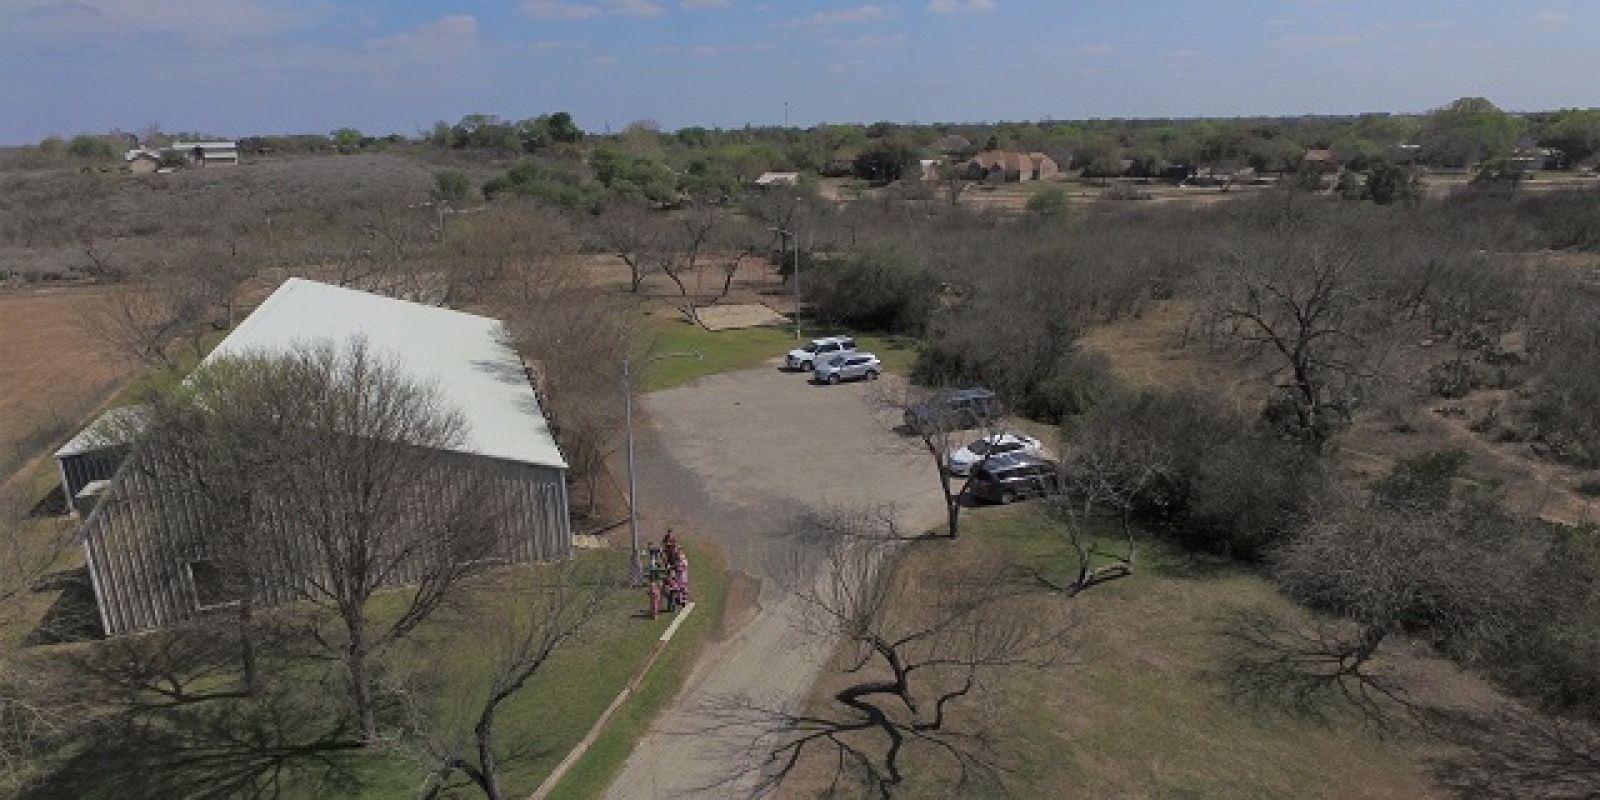 1 Friends Trail, Uvalde, 78801, 8 Rooms Rooms,2 BathroomsBathrooms,Commercial,Pending,Friends Trail,1064